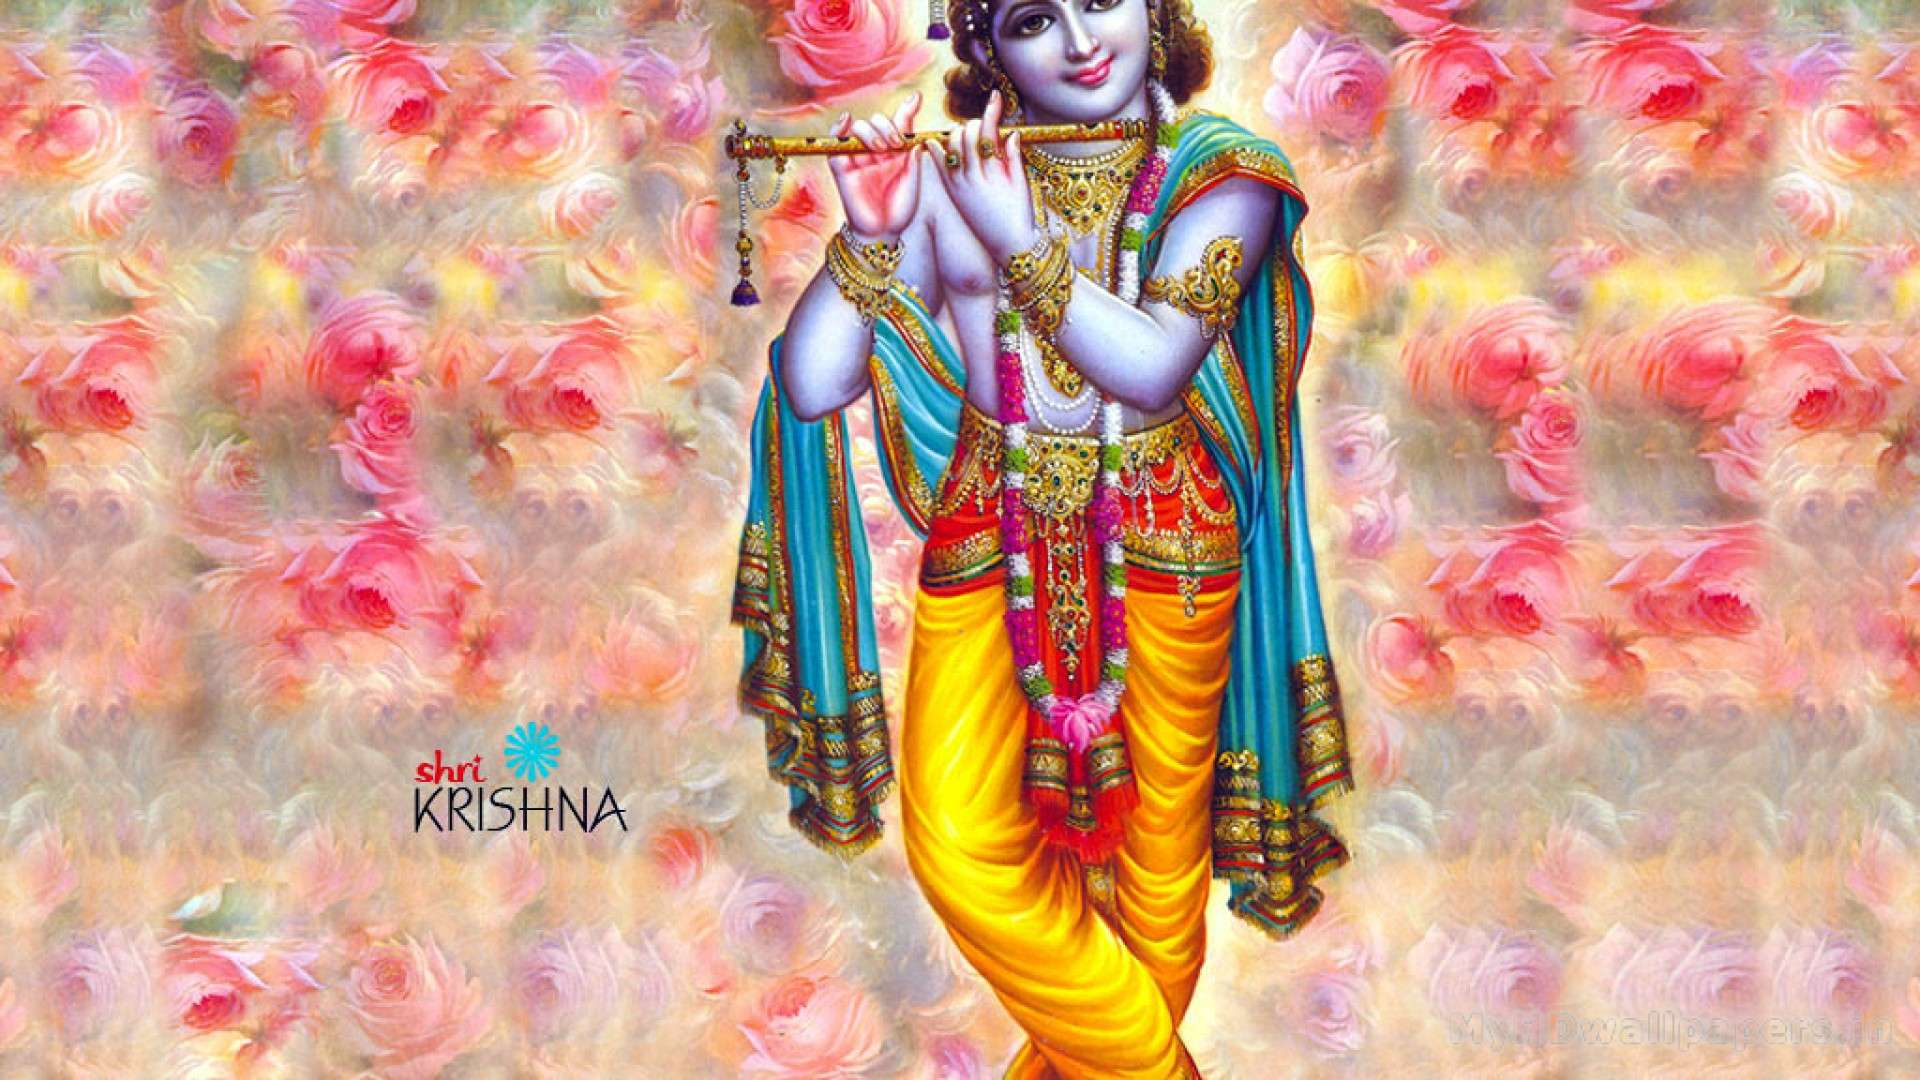 Wallpaper download krishna - Sri Krishna Wallpapers Full Hd Hd Wallpapers